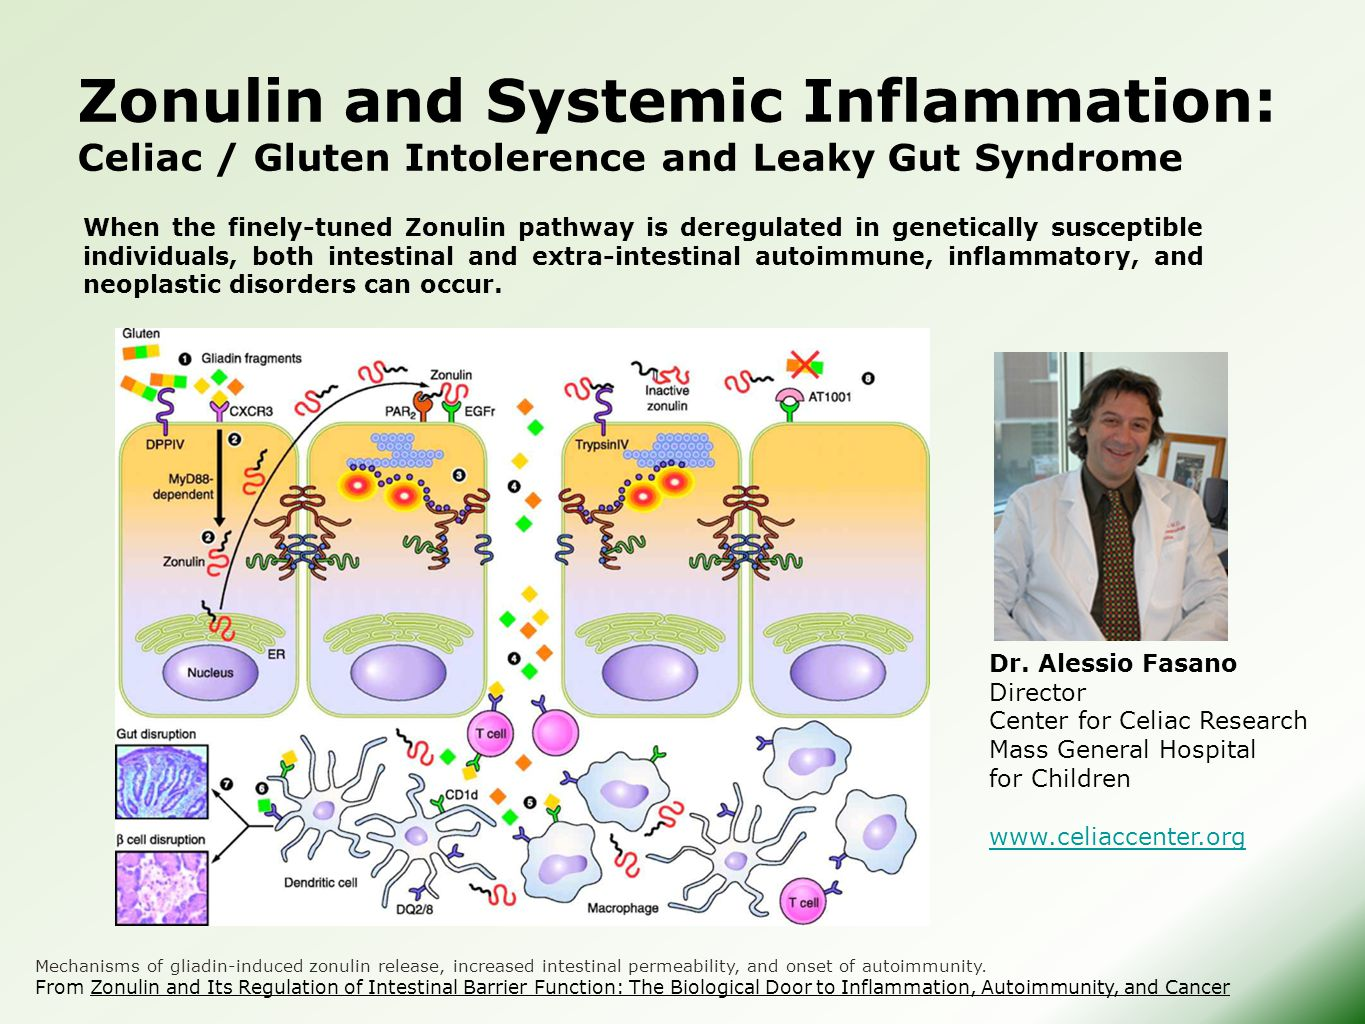 Zonulin and Systemic Inflammation: Celiac / Gluten Intolerence and Leaky Gut Syndrome When the finely-tuned Zonulin pathway is deregulated in genetica